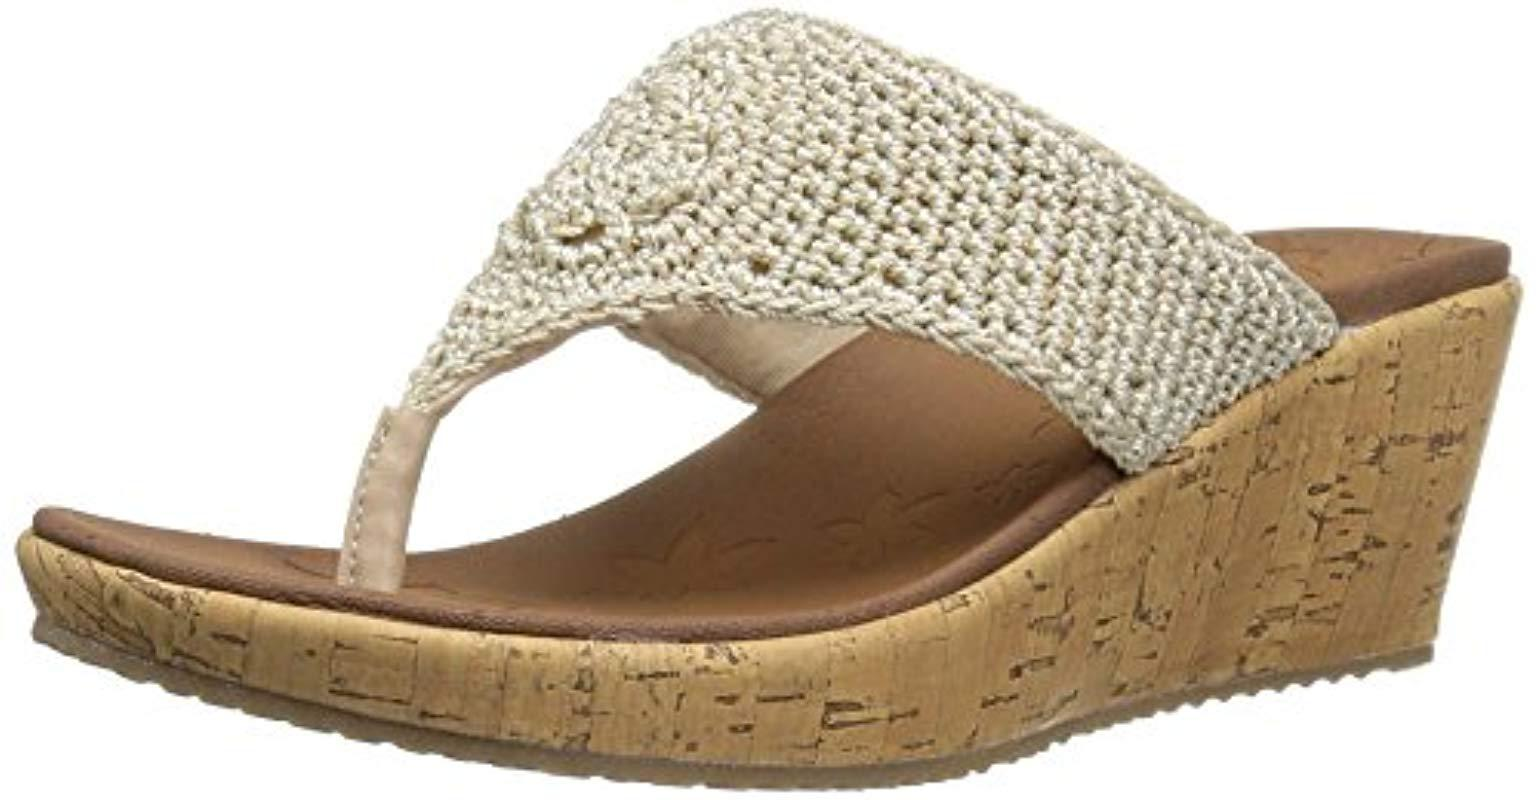 21eec5bacd31 Lyst - Skechers Cali Beverlee Wedge Sandal in Natural - Save 11%